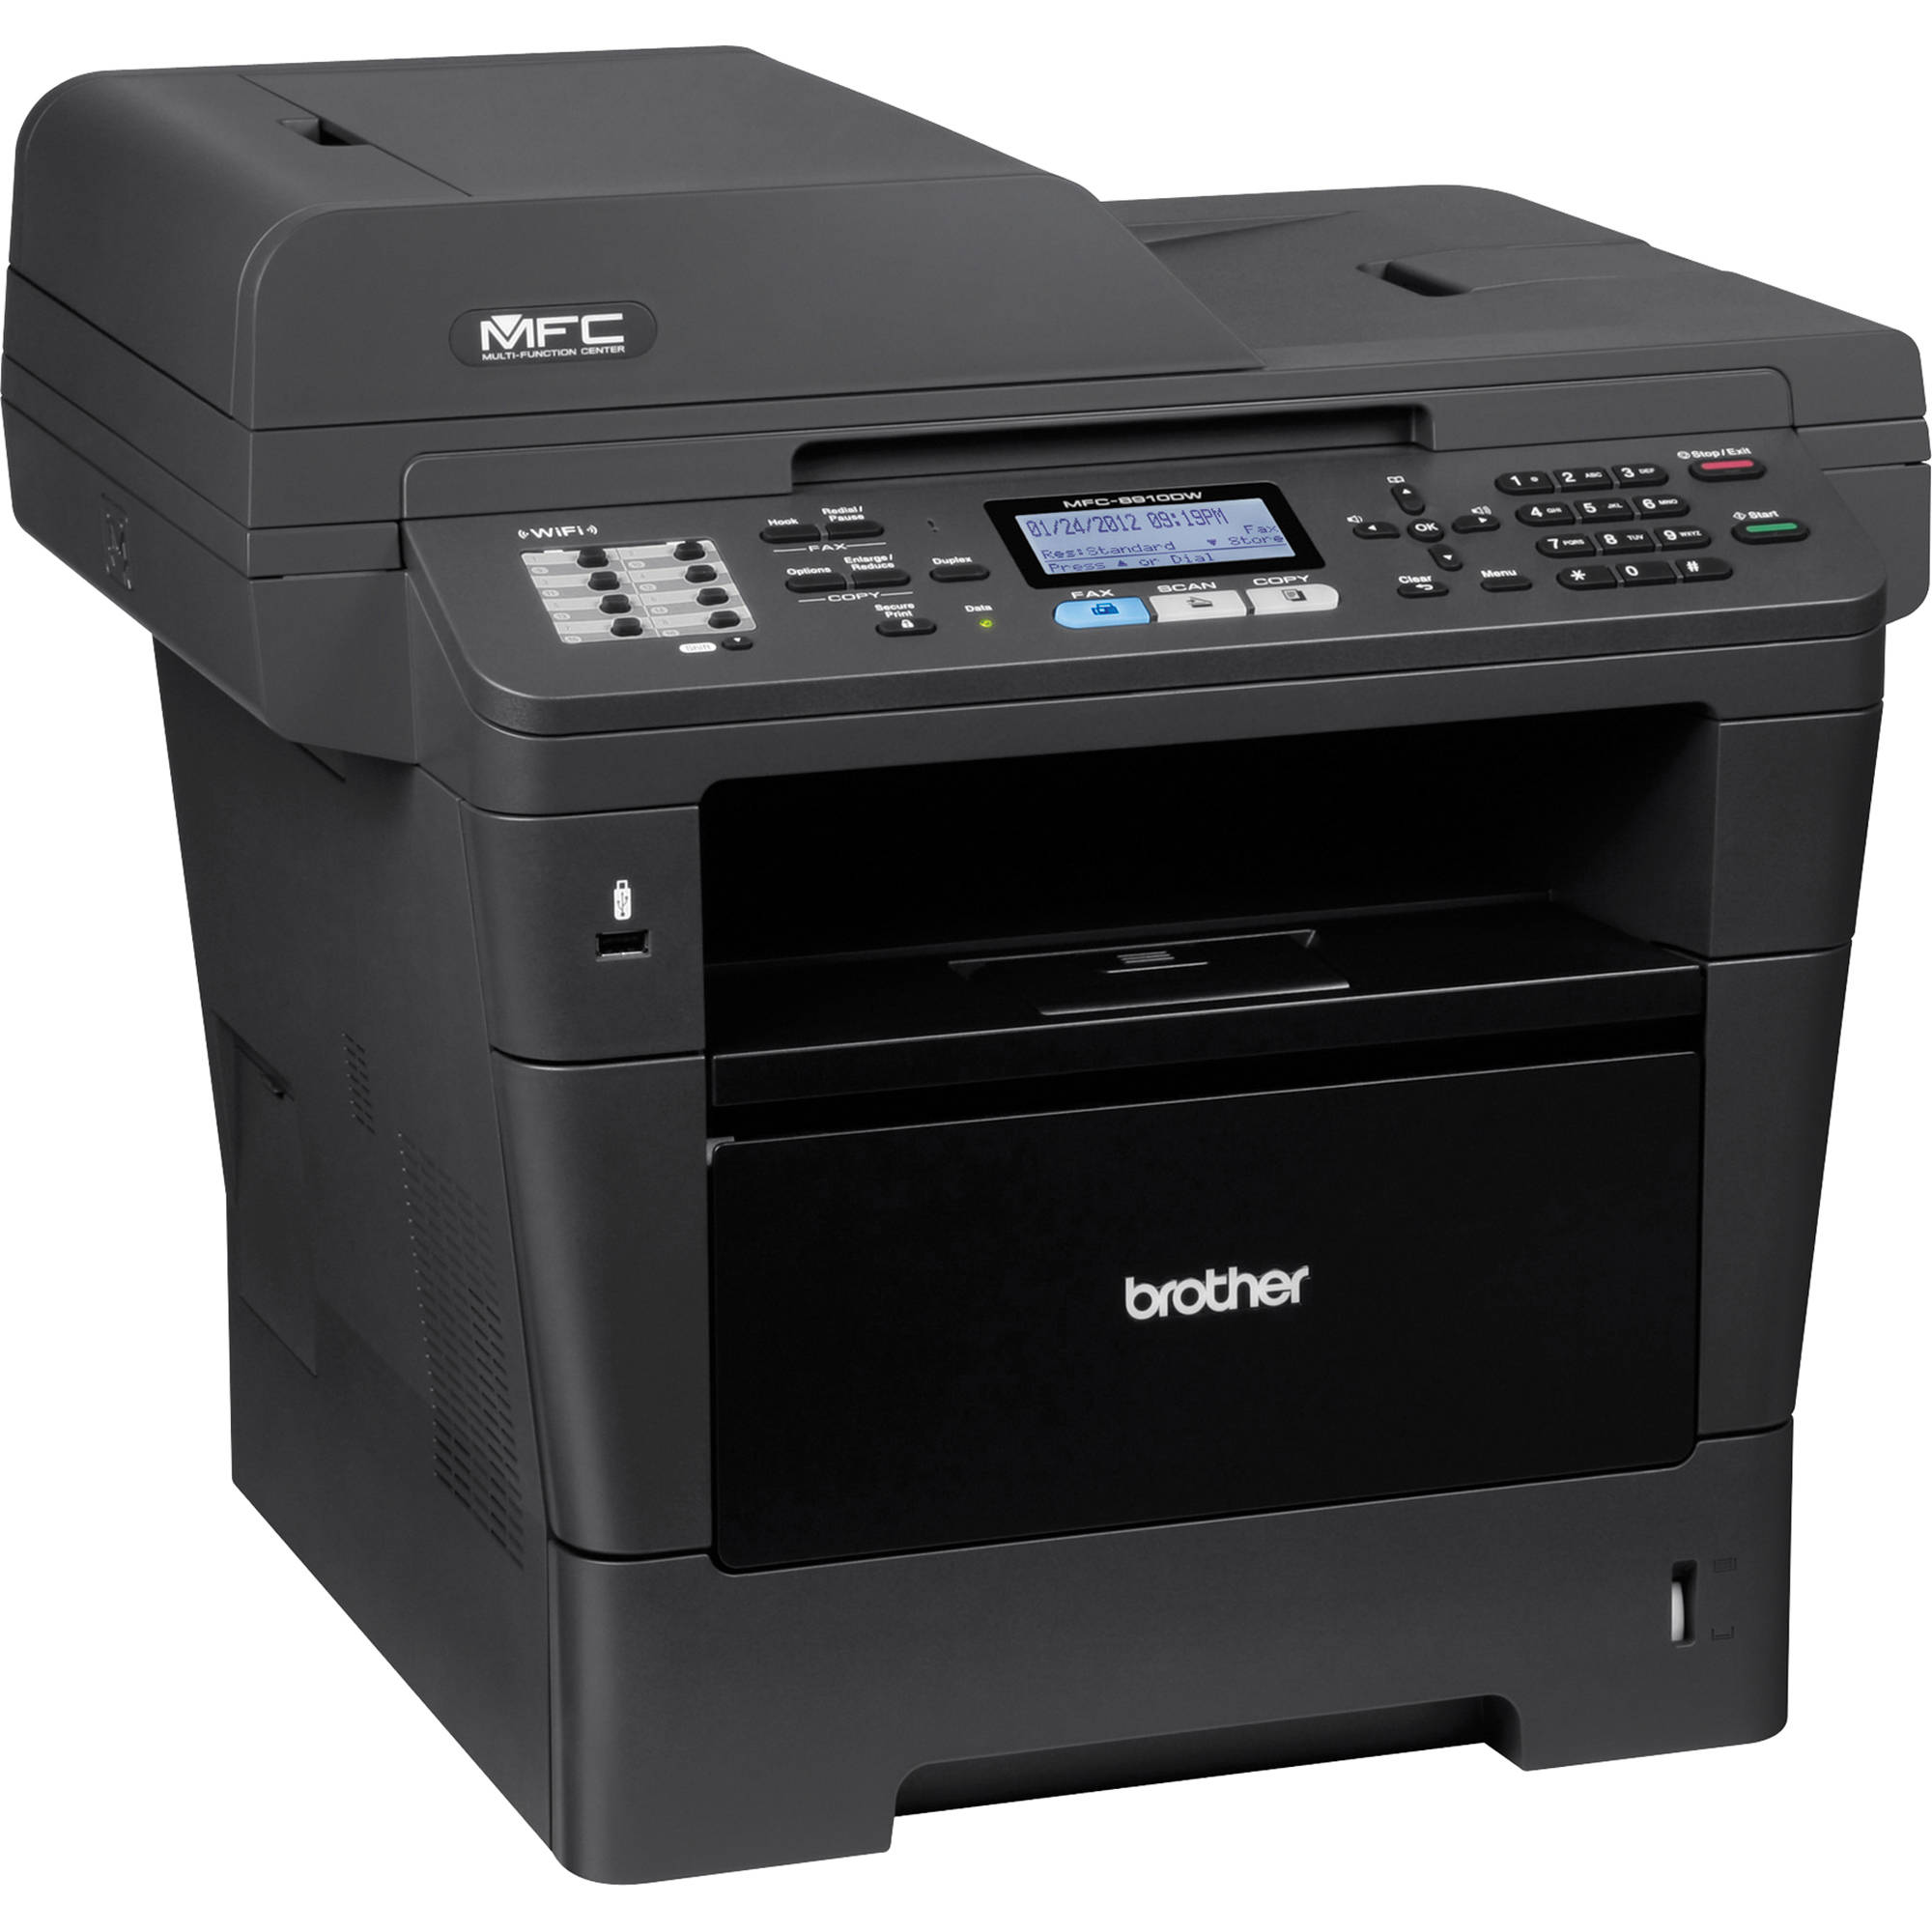 BROTHER MFC 8910DW SCANNER DRIVER